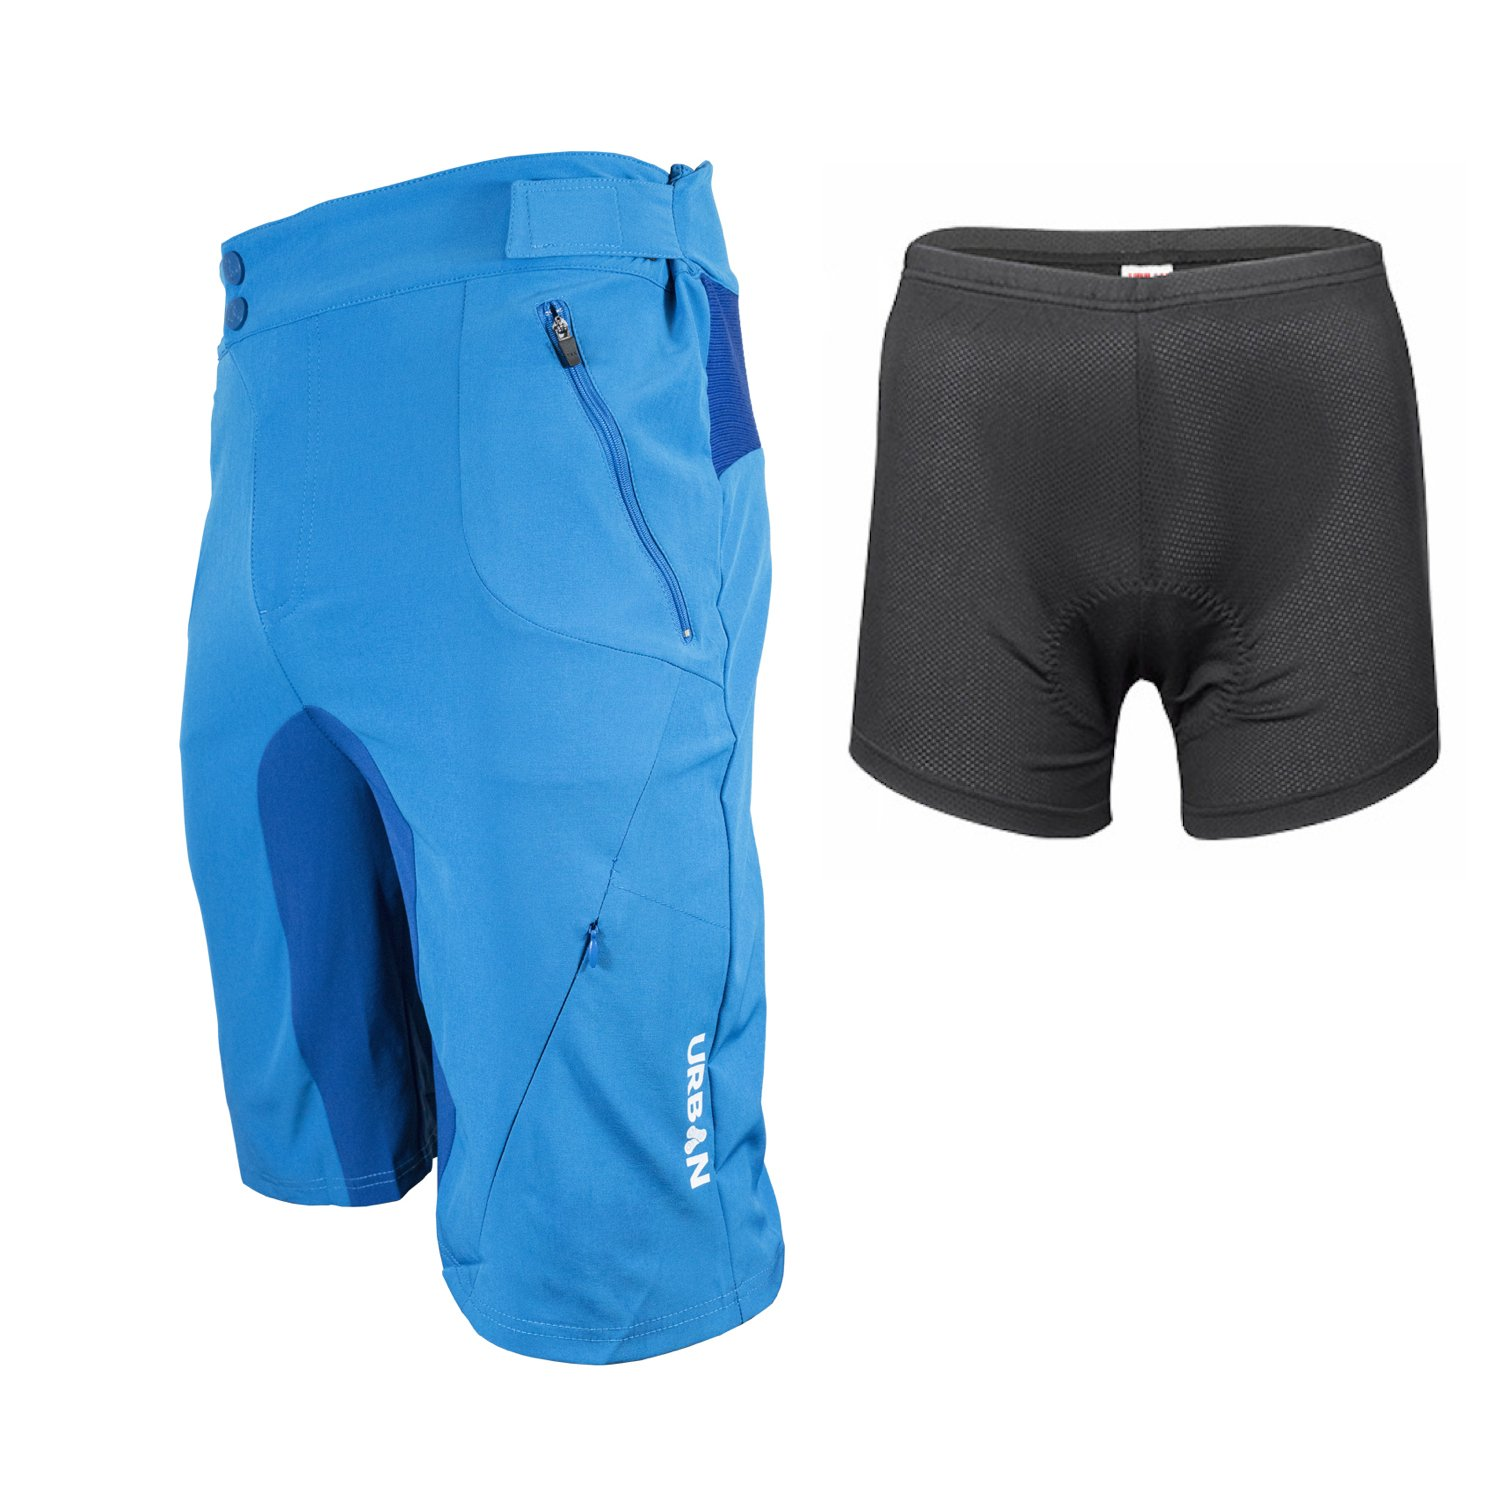 Urban Cycling Apparel Flex MTB Trail Shorts - Flex Soft Shell Mountain Bike Shorts with Zip Pockets and Vents (Medium, Blue, with Padded Underliner)